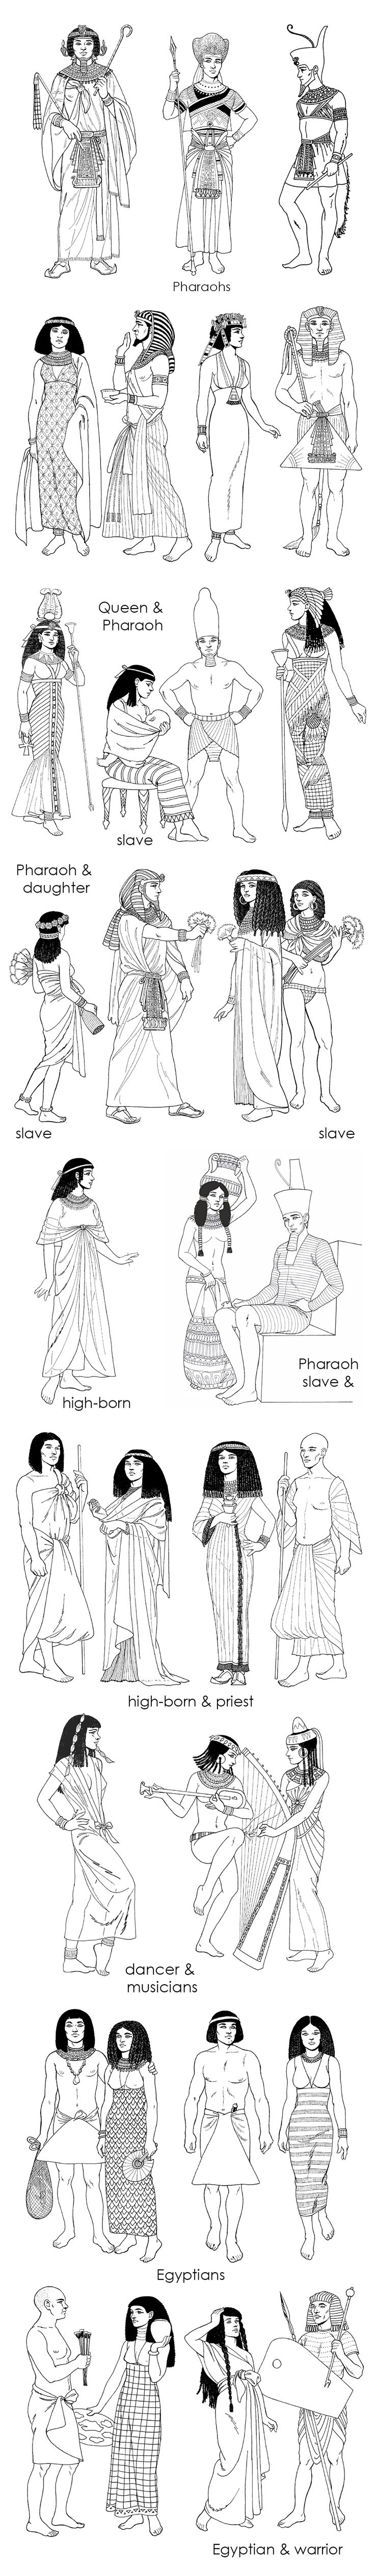 Pharaoh, queen, slave, egyptians, Egypt: